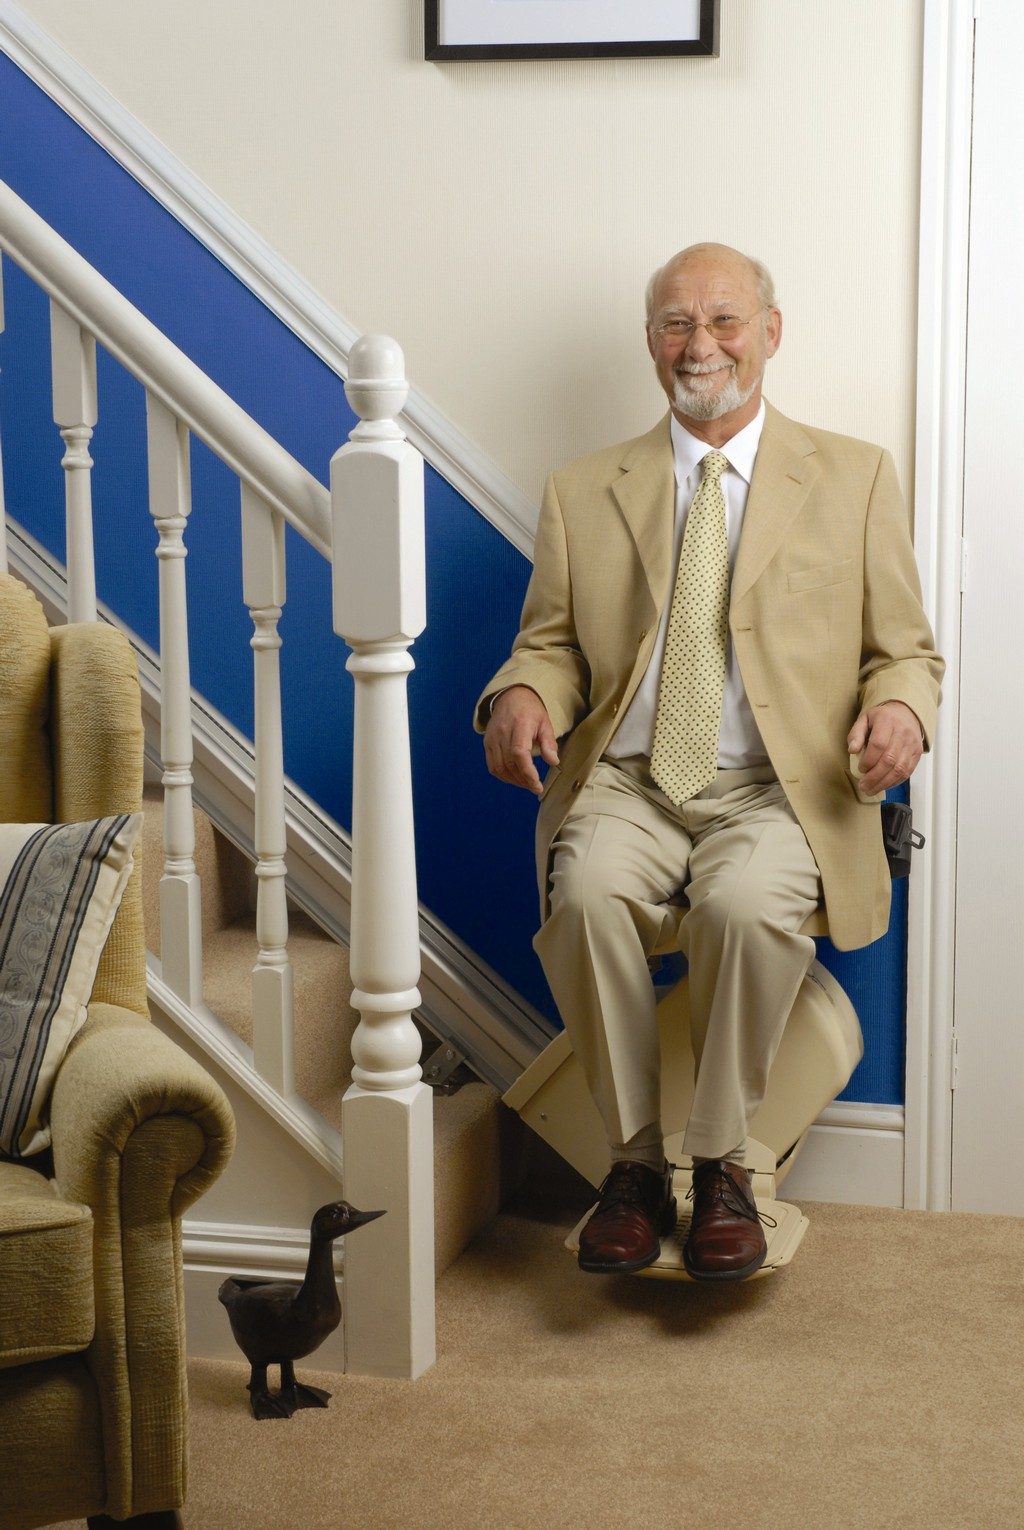 stair chair lift uk, stair lift design requirements, stair lift installers, stairlift medical supplies